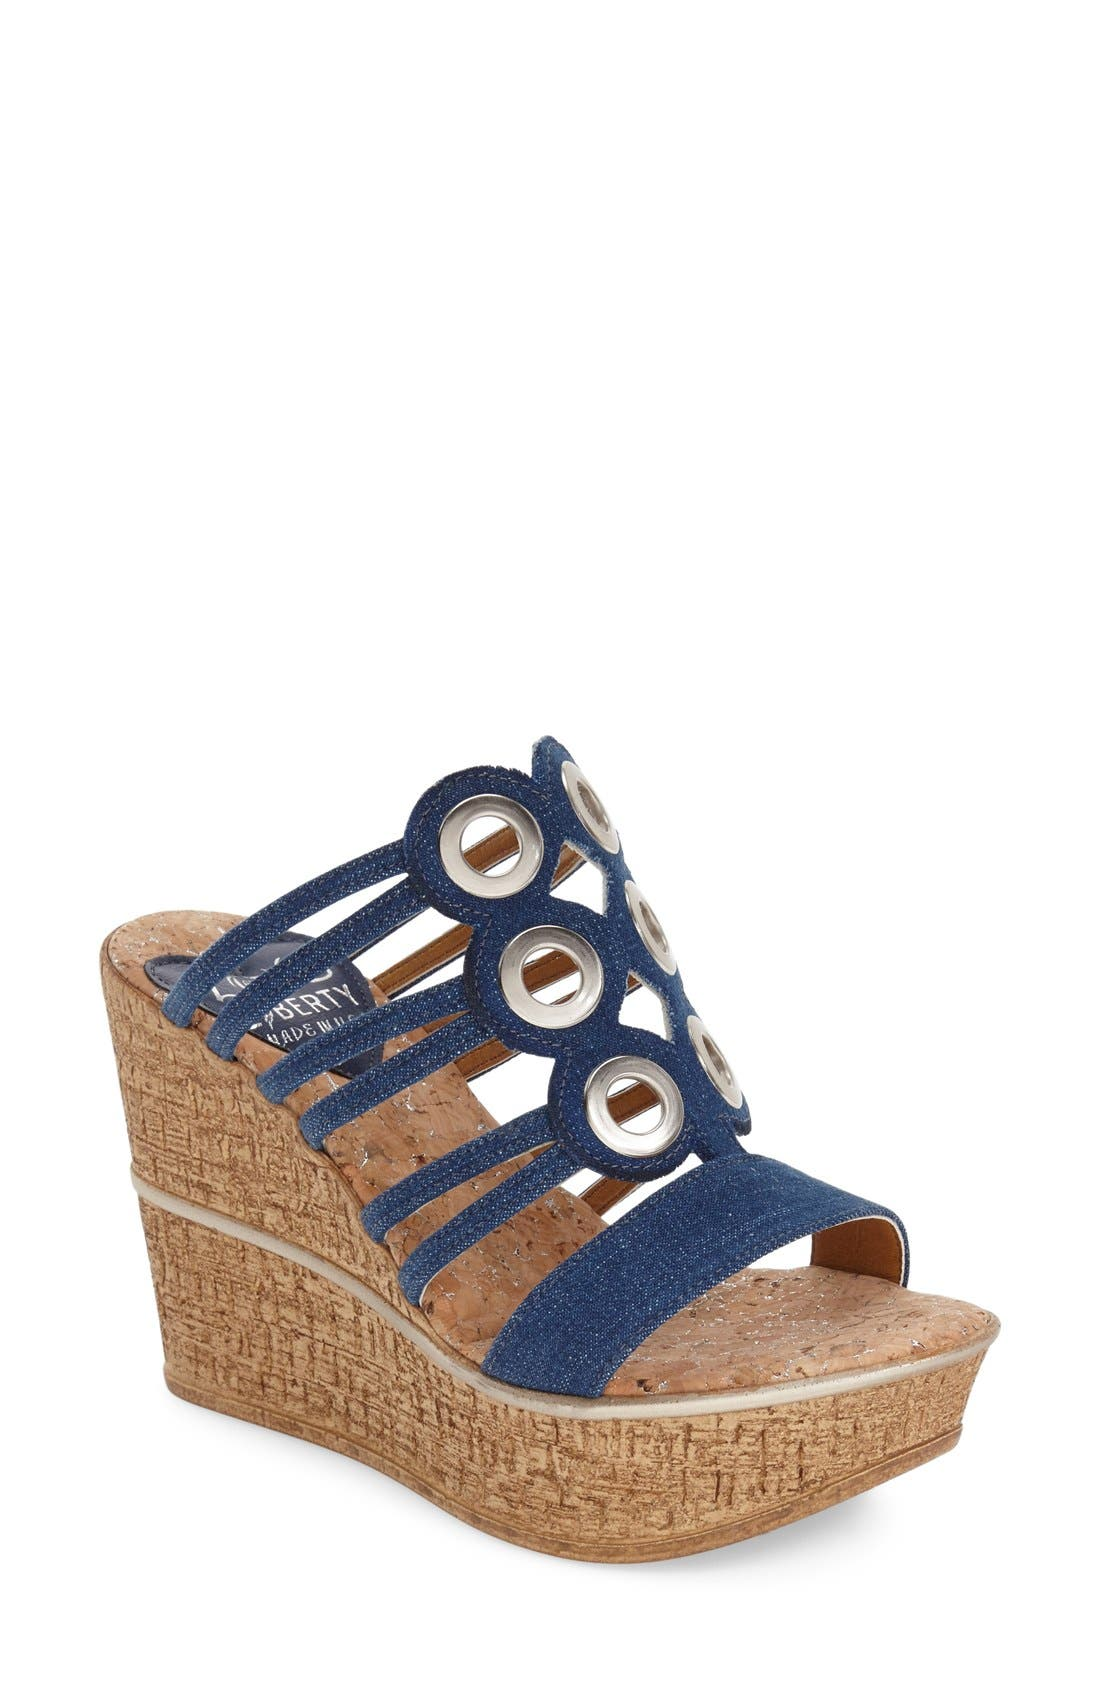 LOVE AND LIBERTY 'Elise' Wedge Sandal